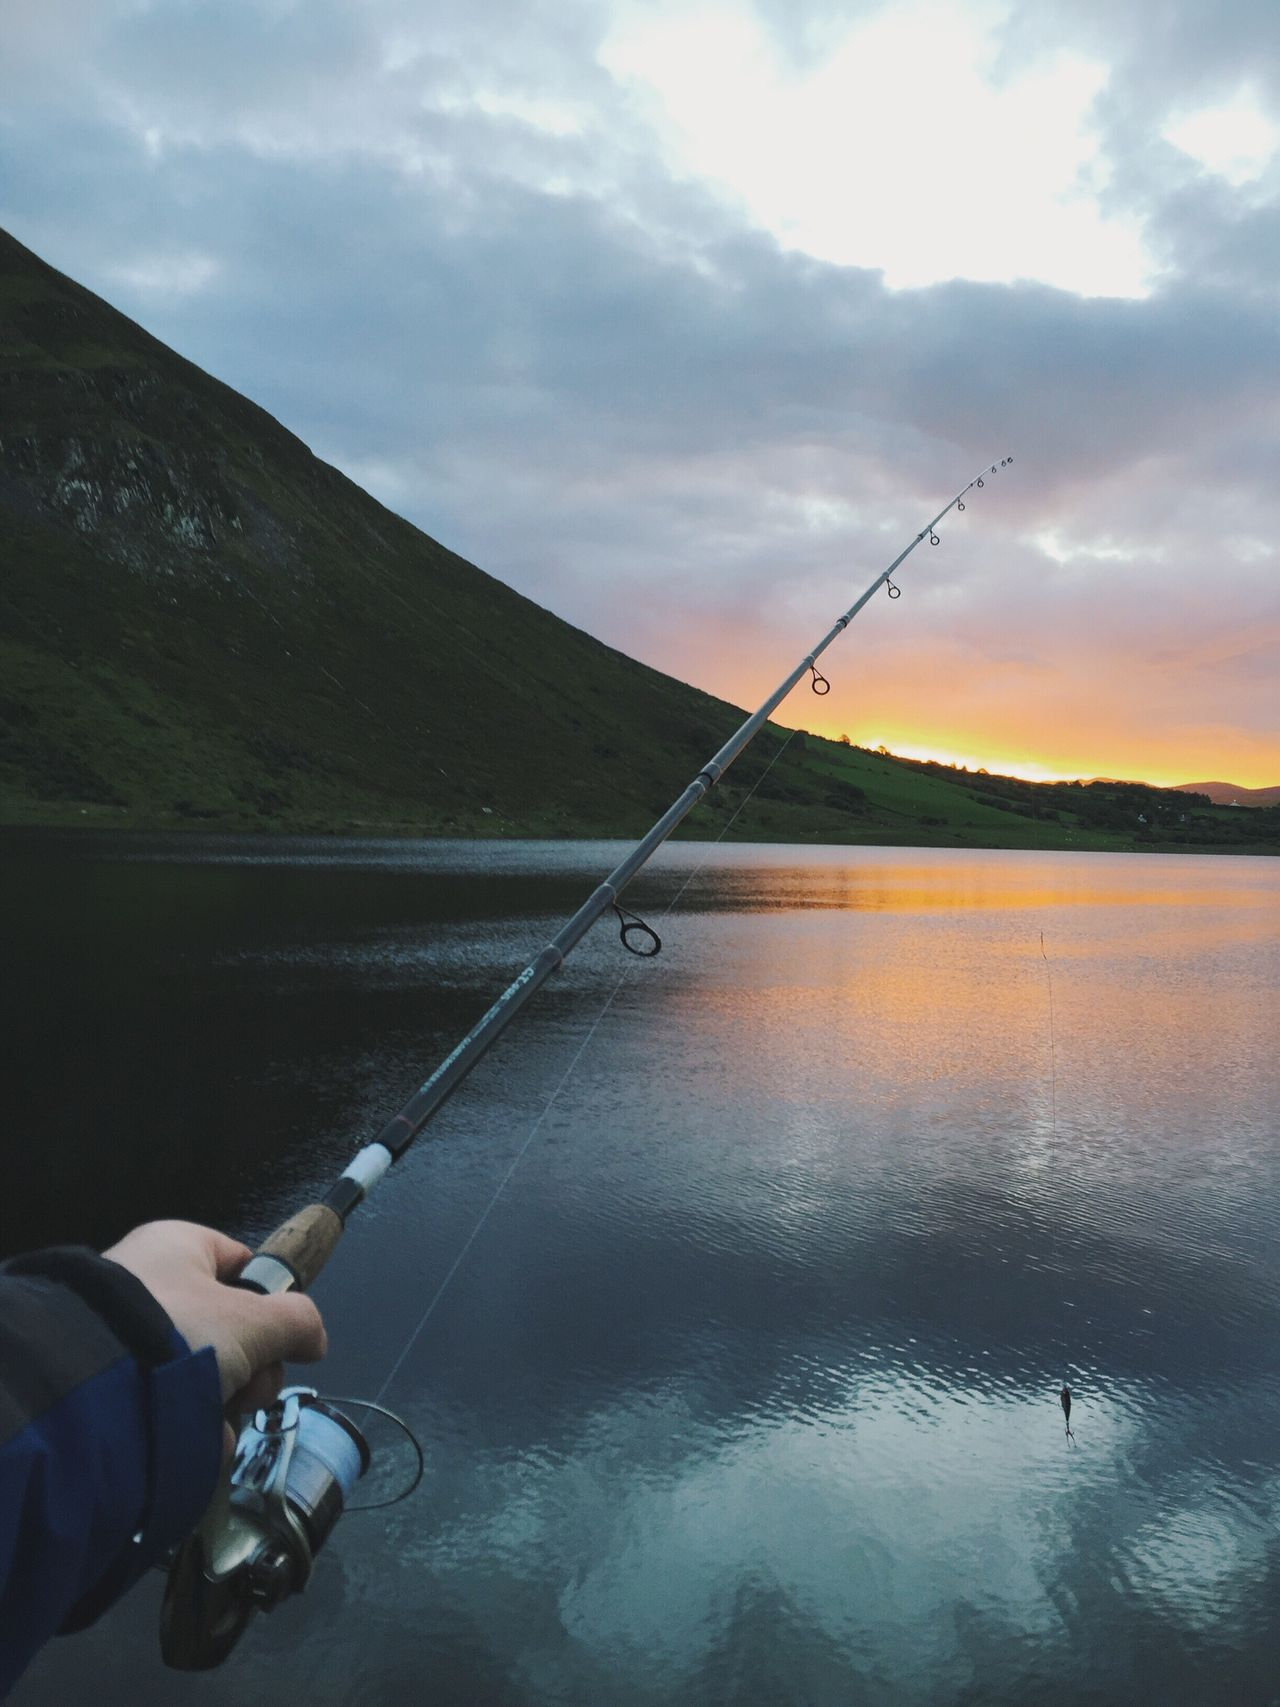 Fishing Ireland Fishing Sky Water Leisure Activity Holding Cloud - Sky Lake Day Outdoors Real People One Person Scenics Fishing Pole Close-up Tranquil Scene Nature Human Hand Catch Of Fish Ireland Fishing Rod